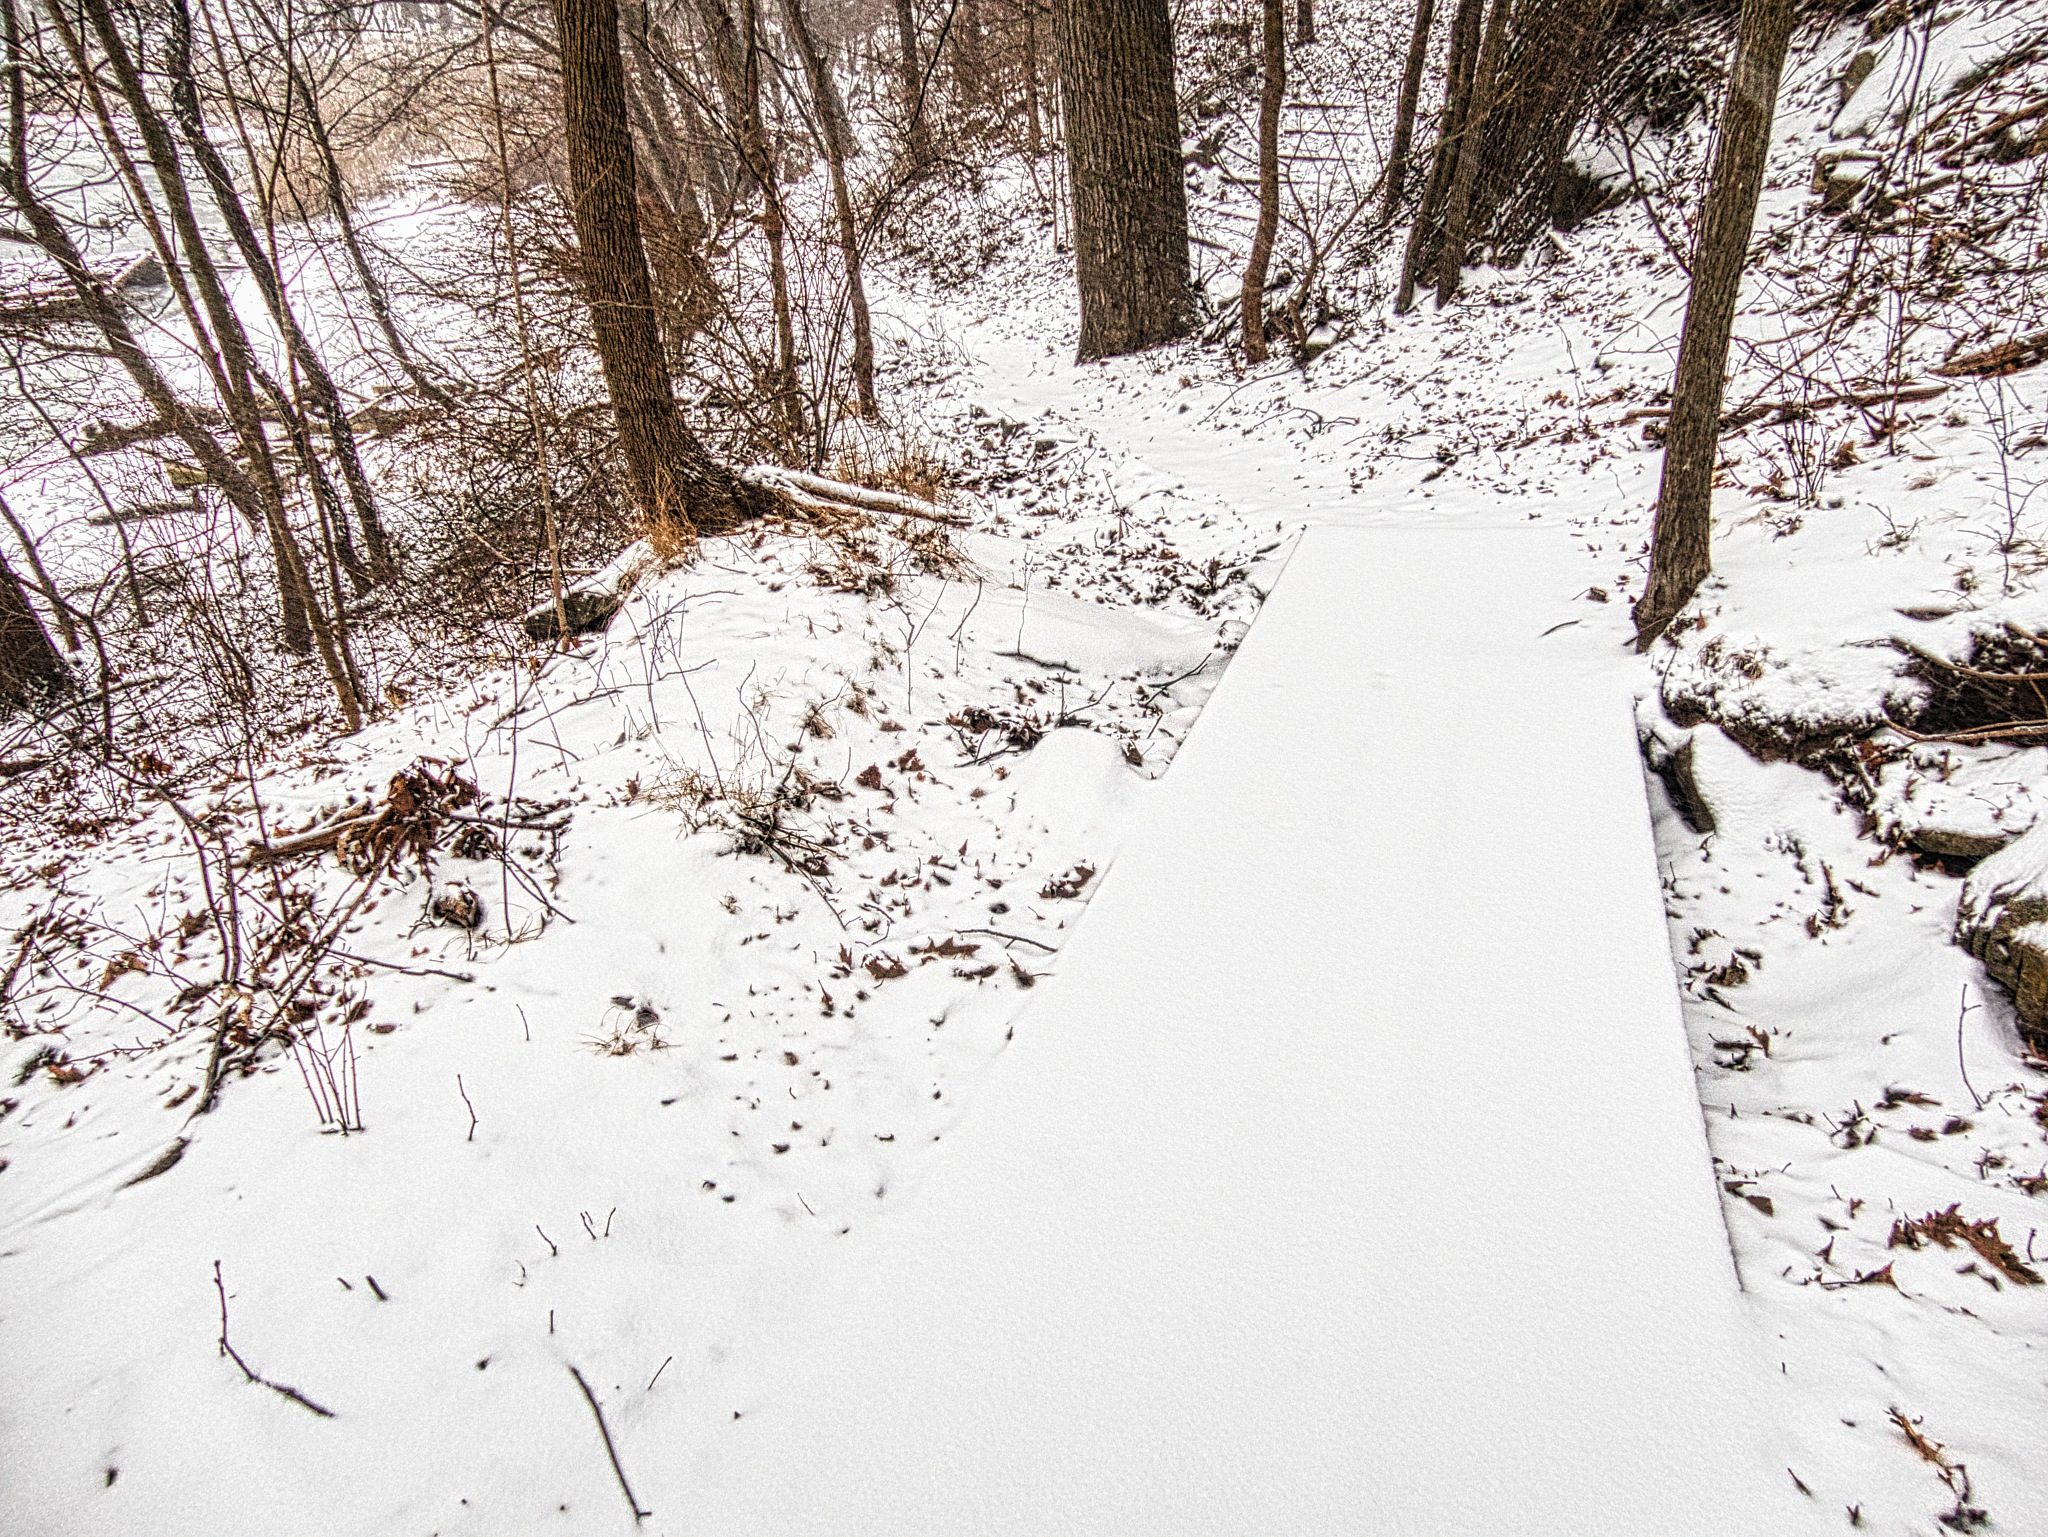 Green's Hill in the Snow by D. Scott Hufford